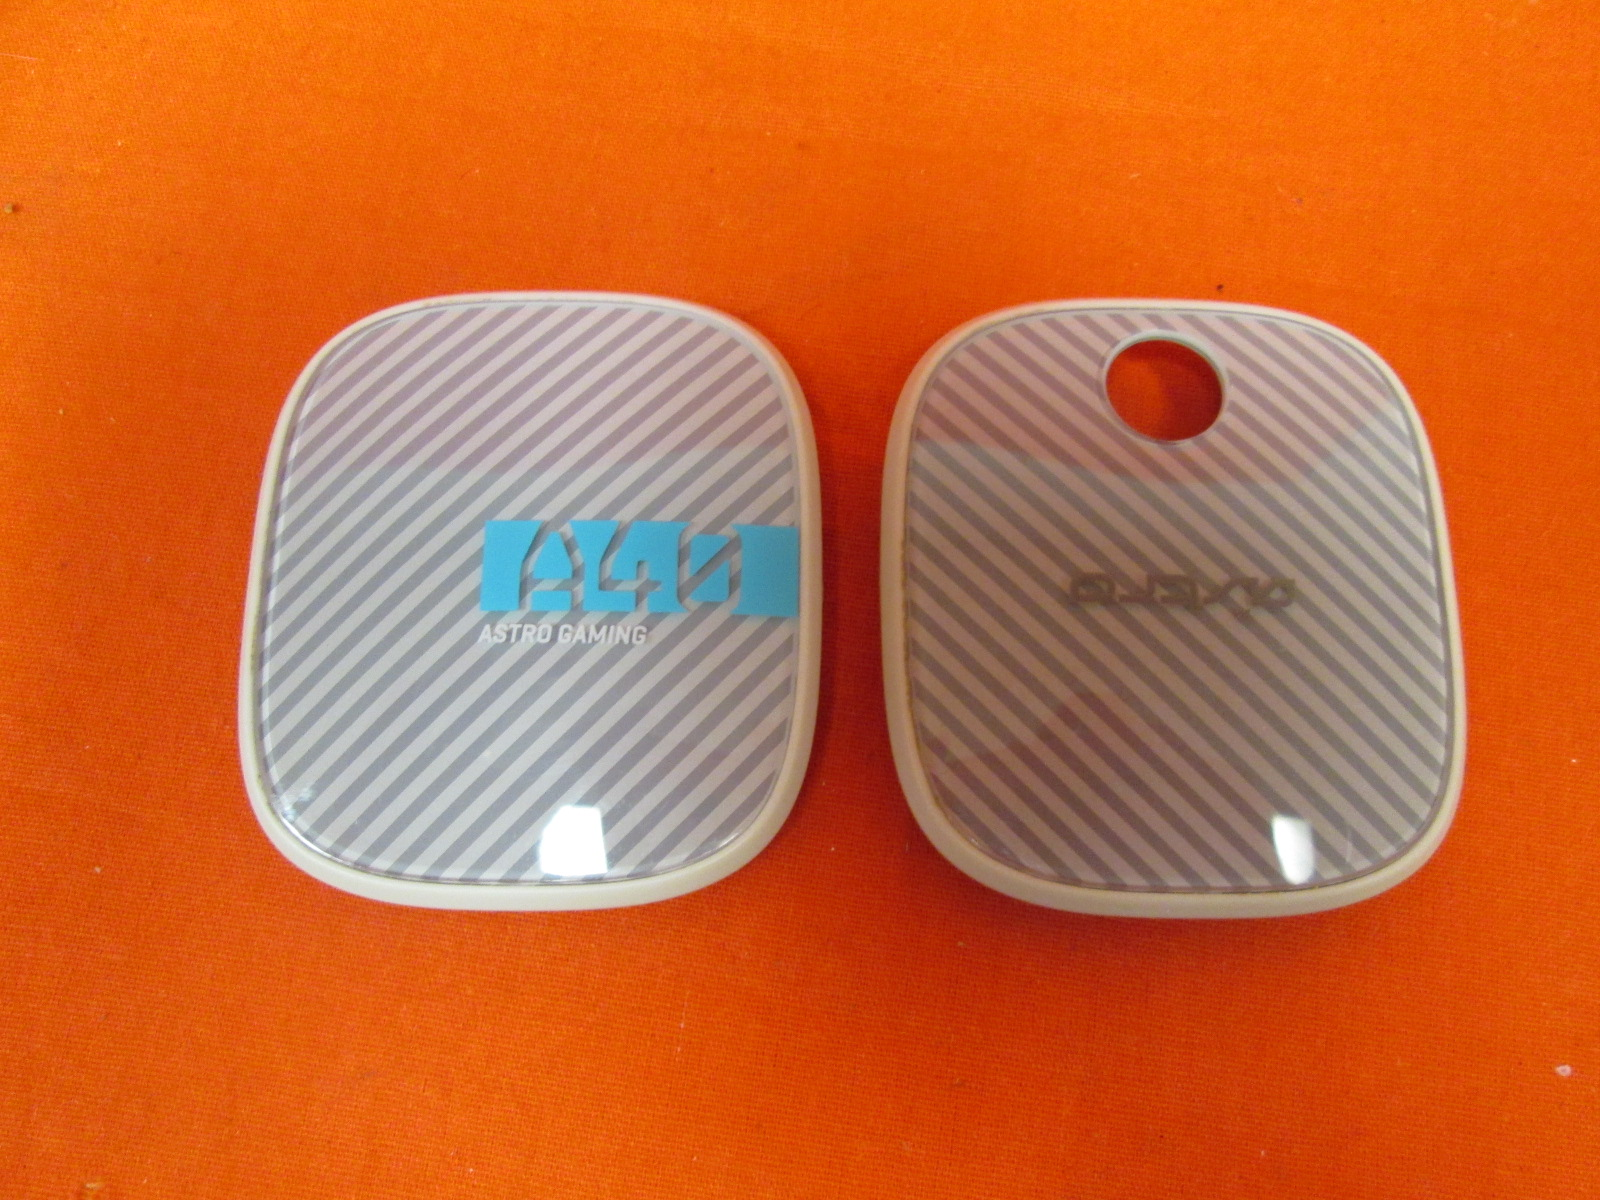 2 Astro A40 Headset Speaker Tags With Magnetic Clip